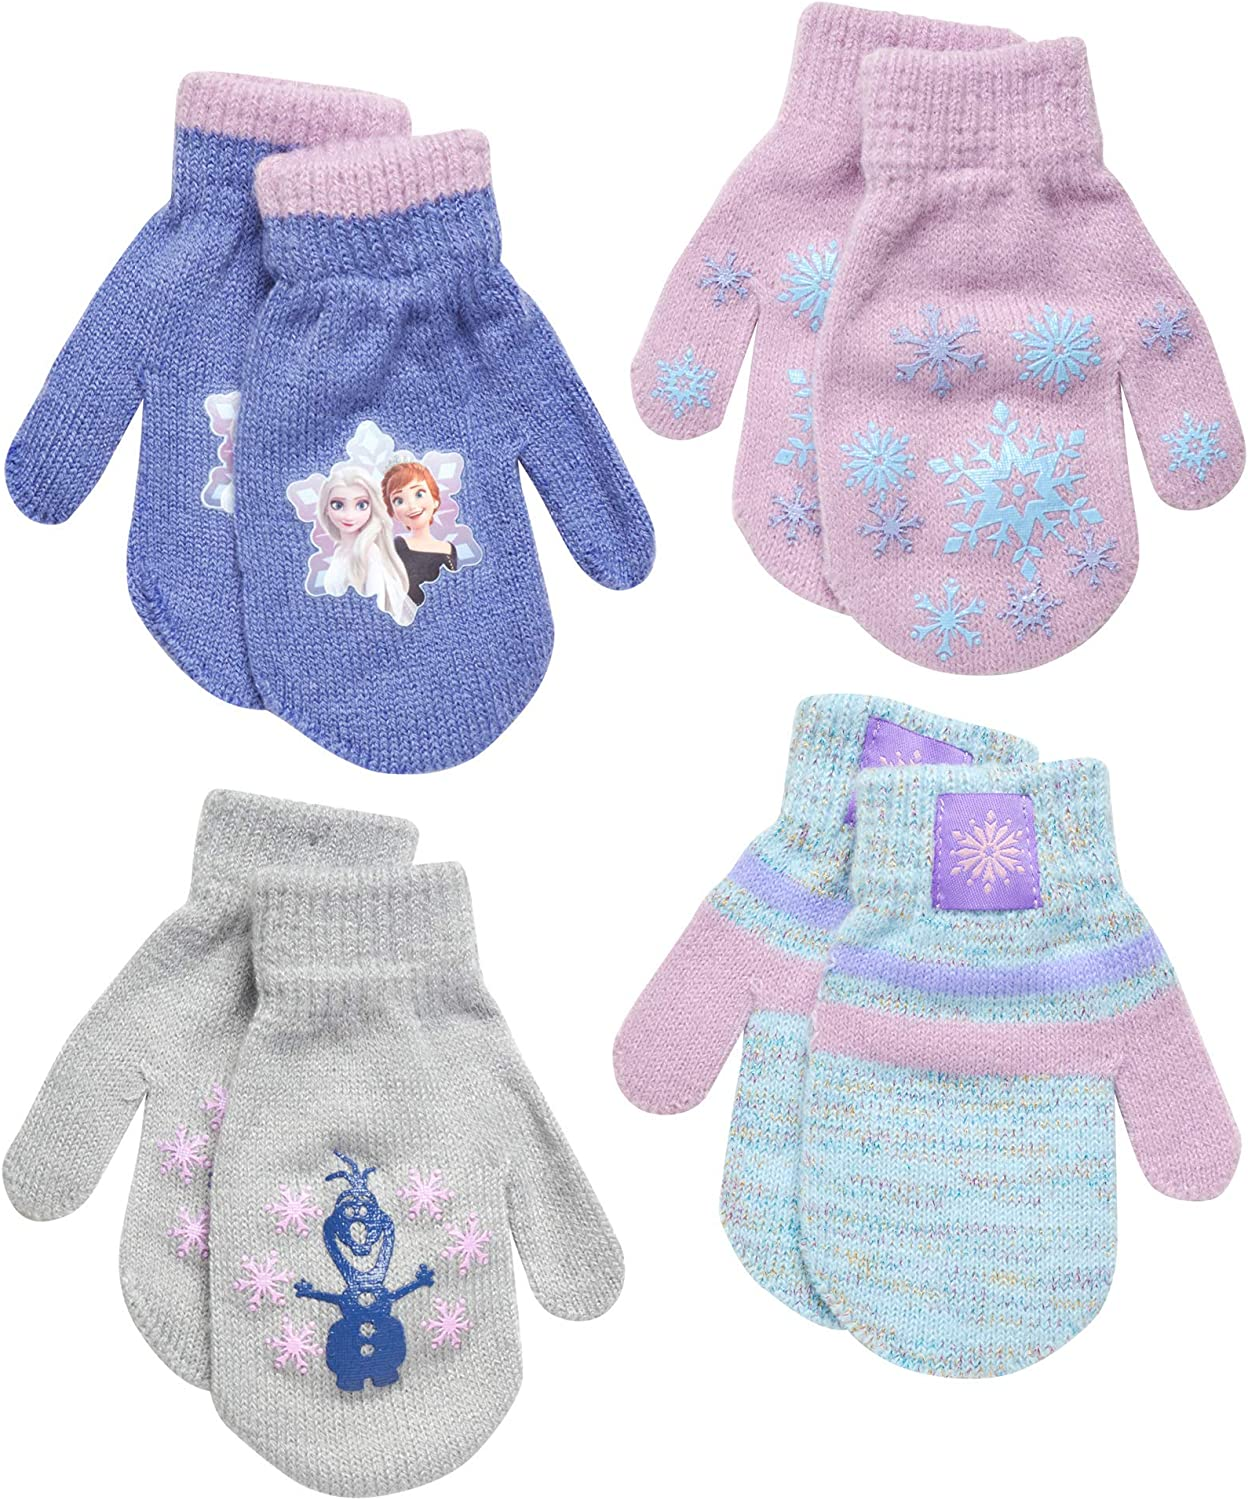 Disney Frozen Girls 4 Pack Gloves or Mittens (Toddler/Little Girls)